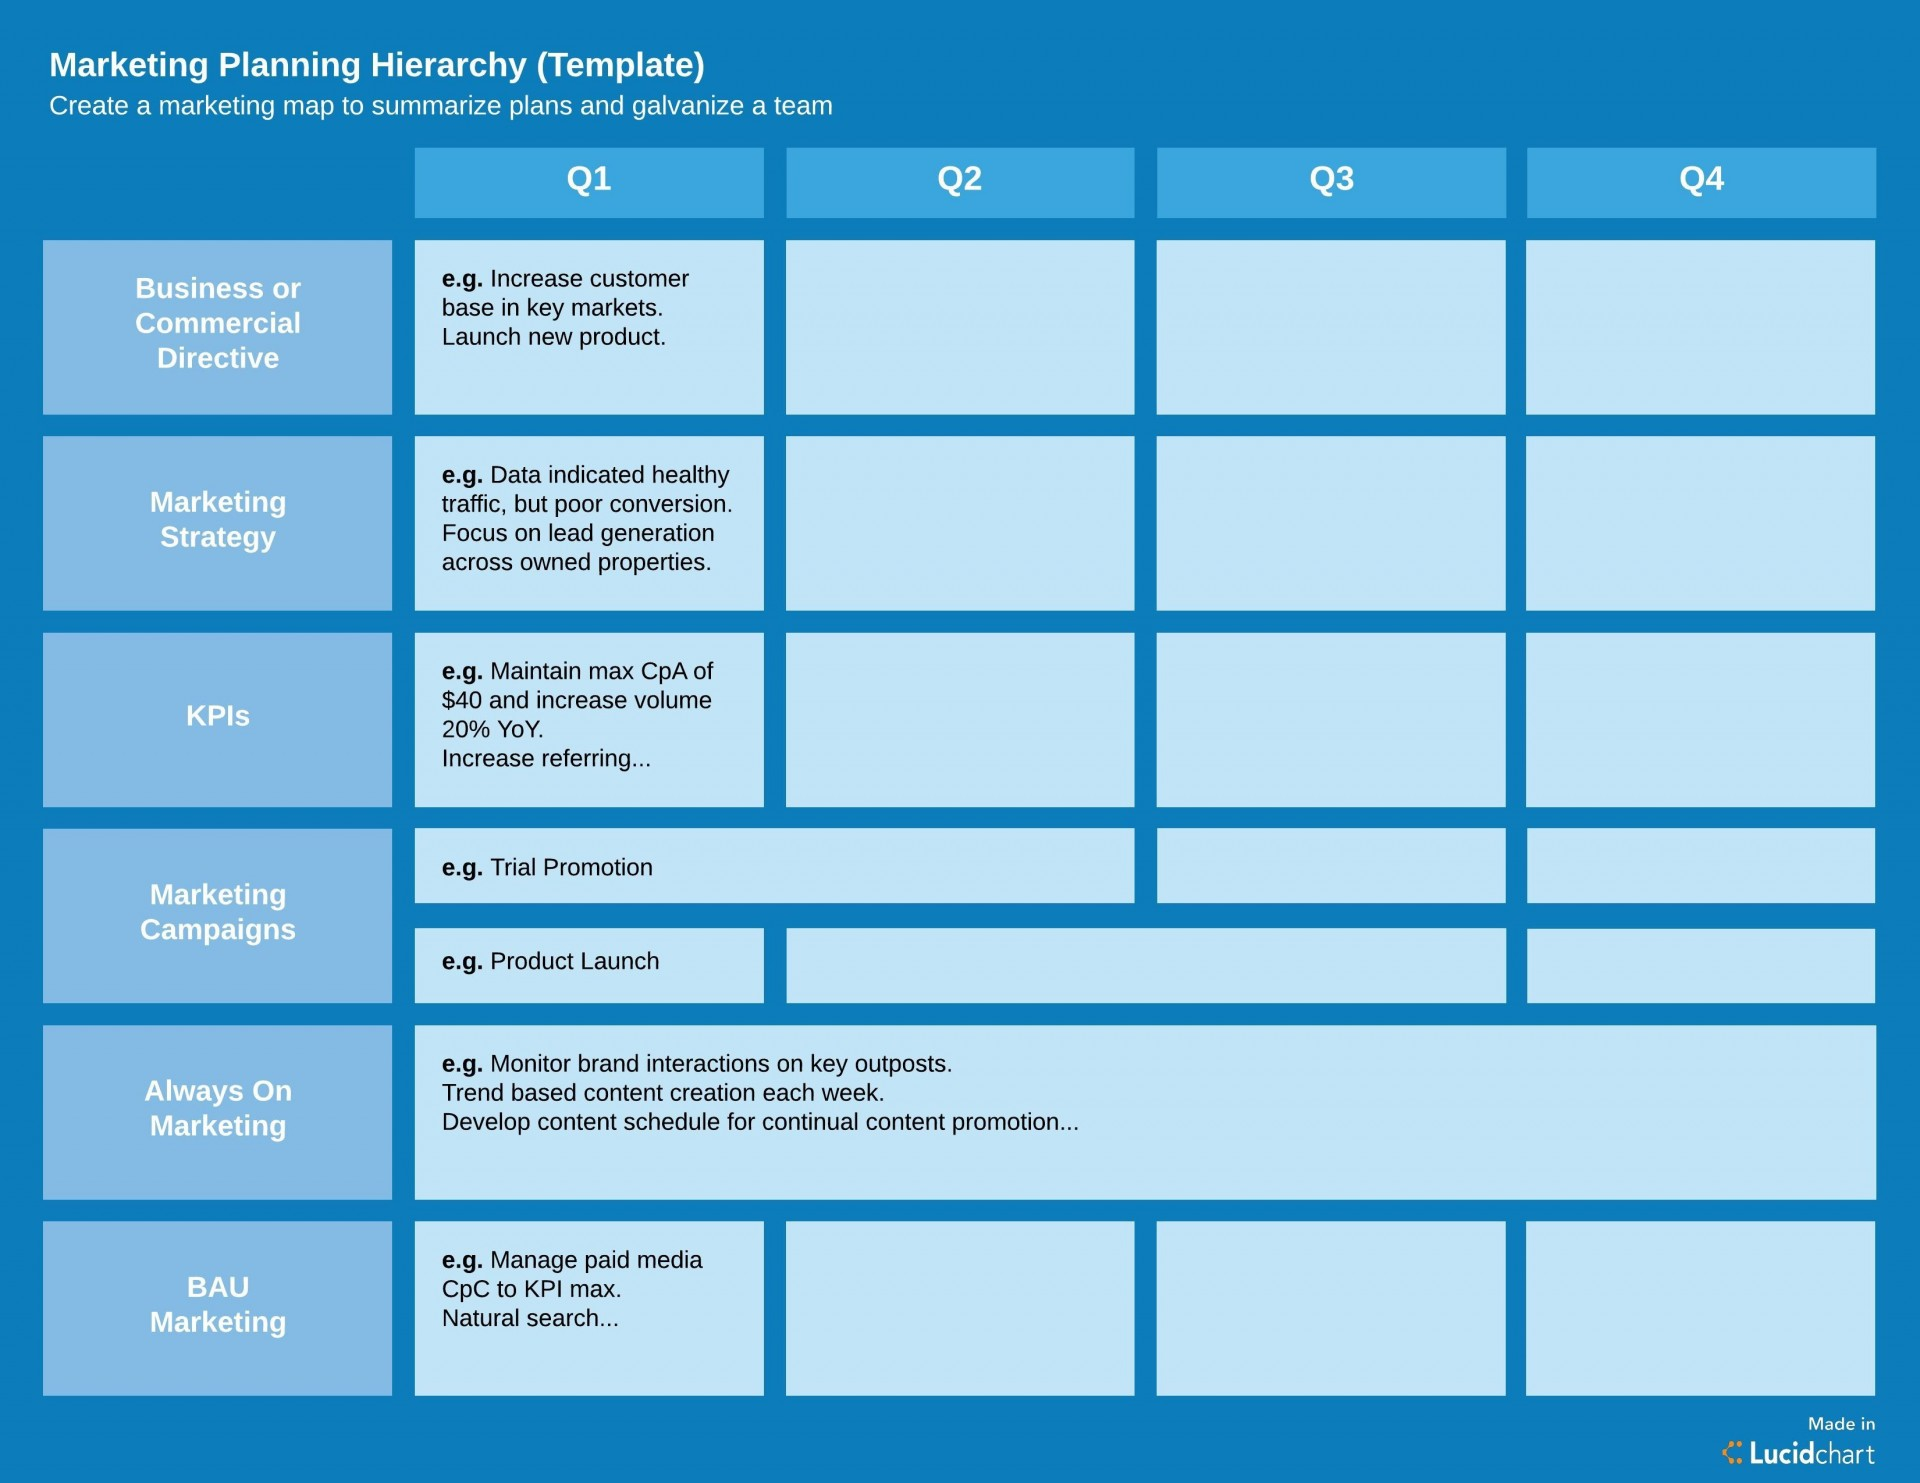 003 Archaicawful Free Marketing Plan Template Photo  Hubspot Download Ppt1920